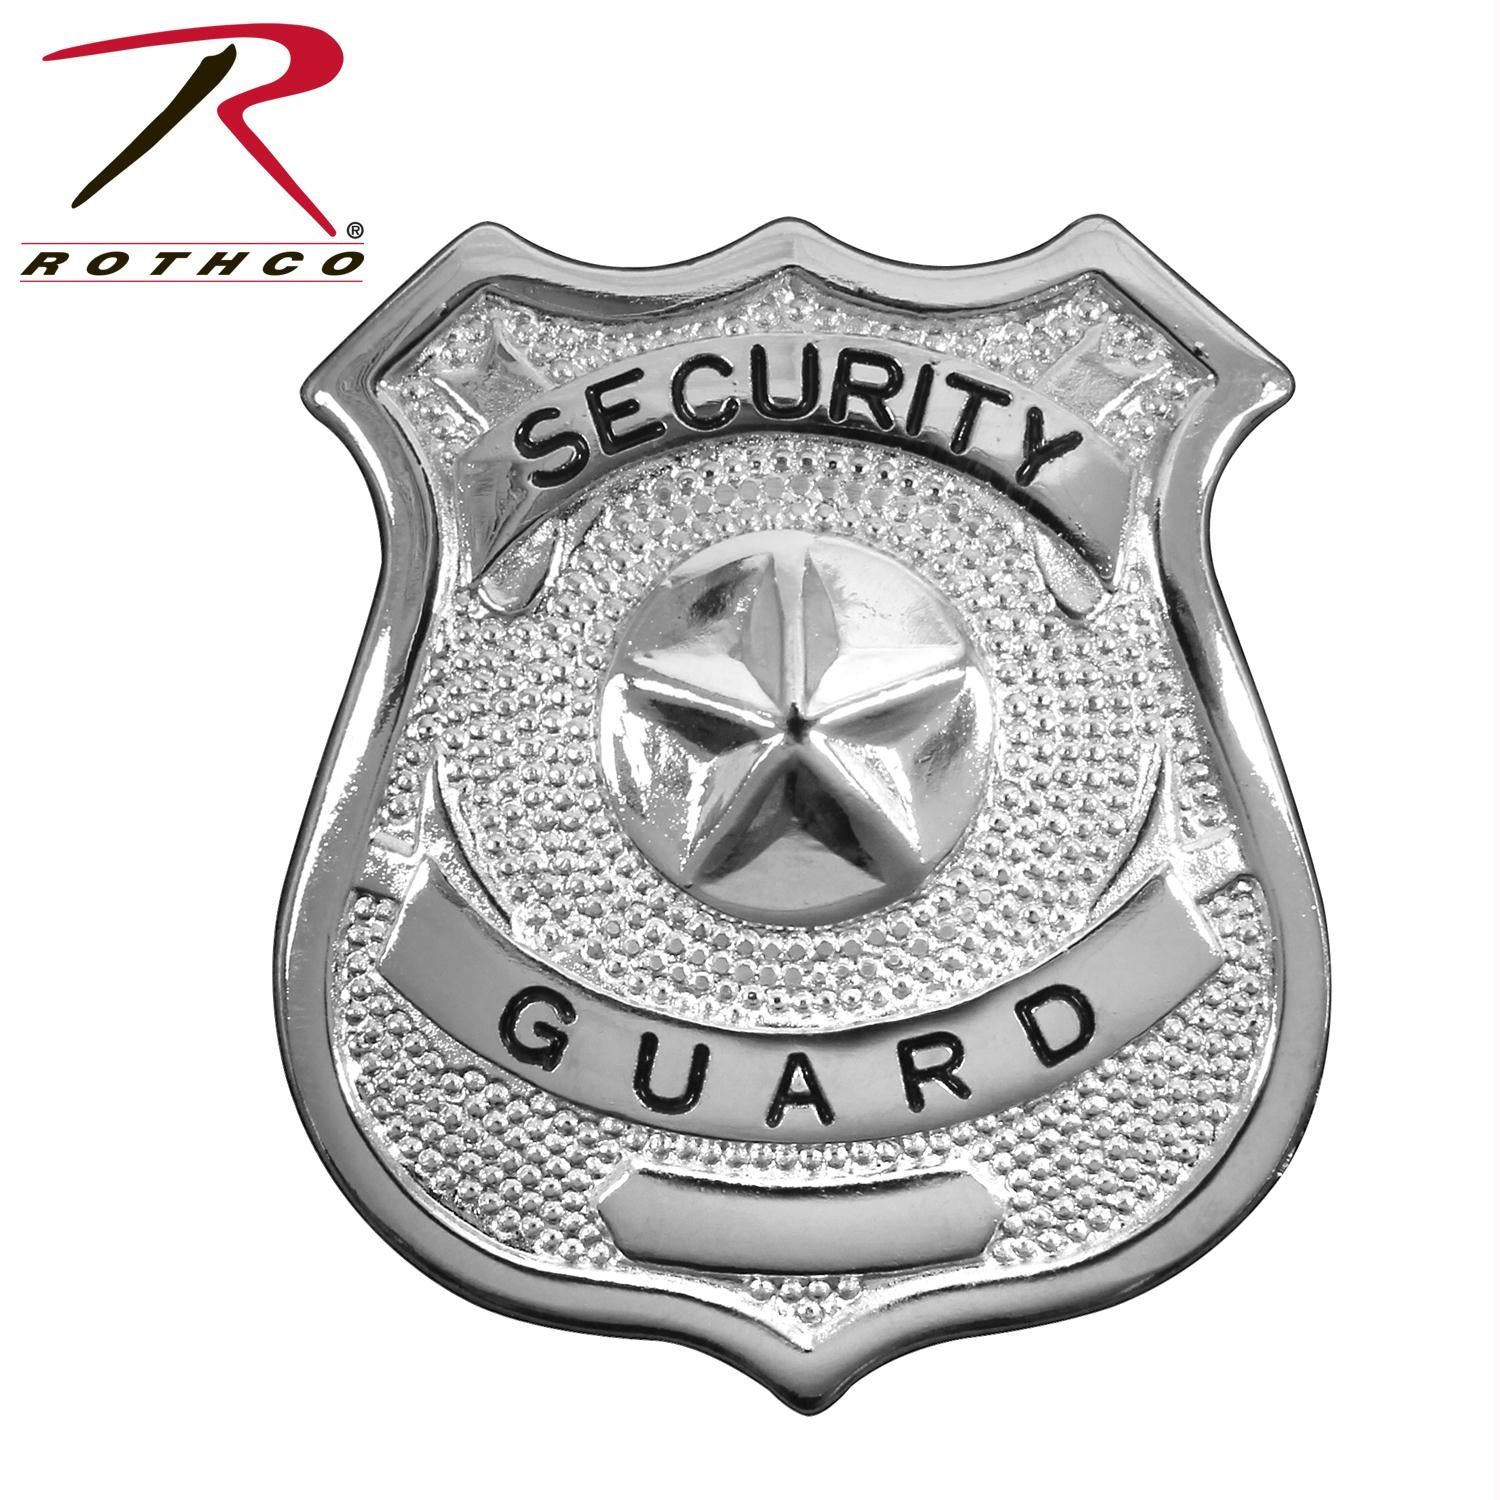 Rothco Security Guard Badge - Silver